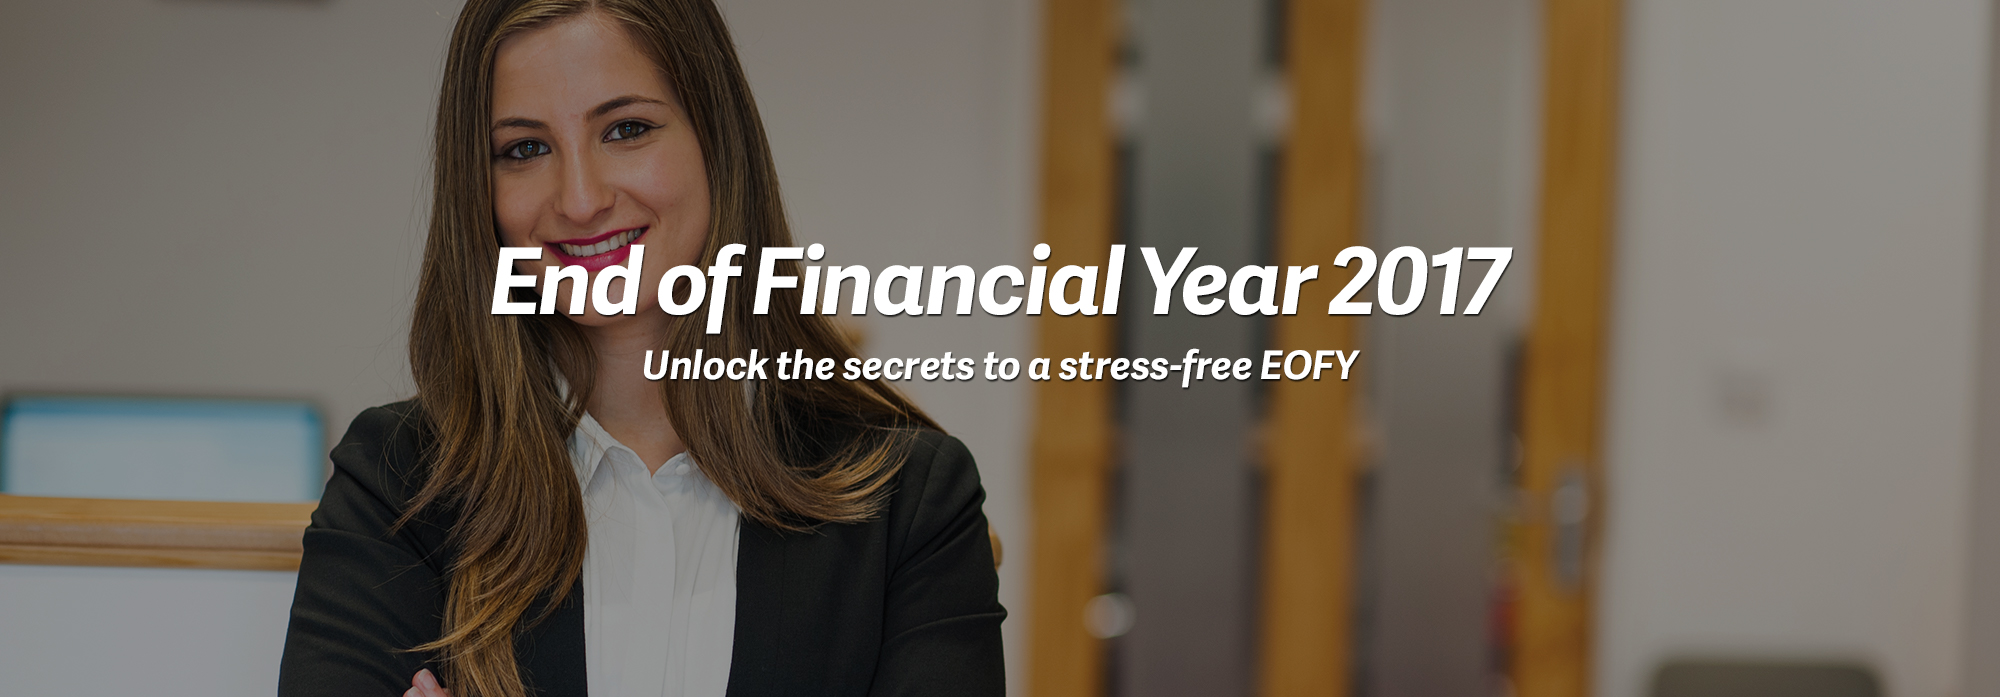 End of Financial Year 2017